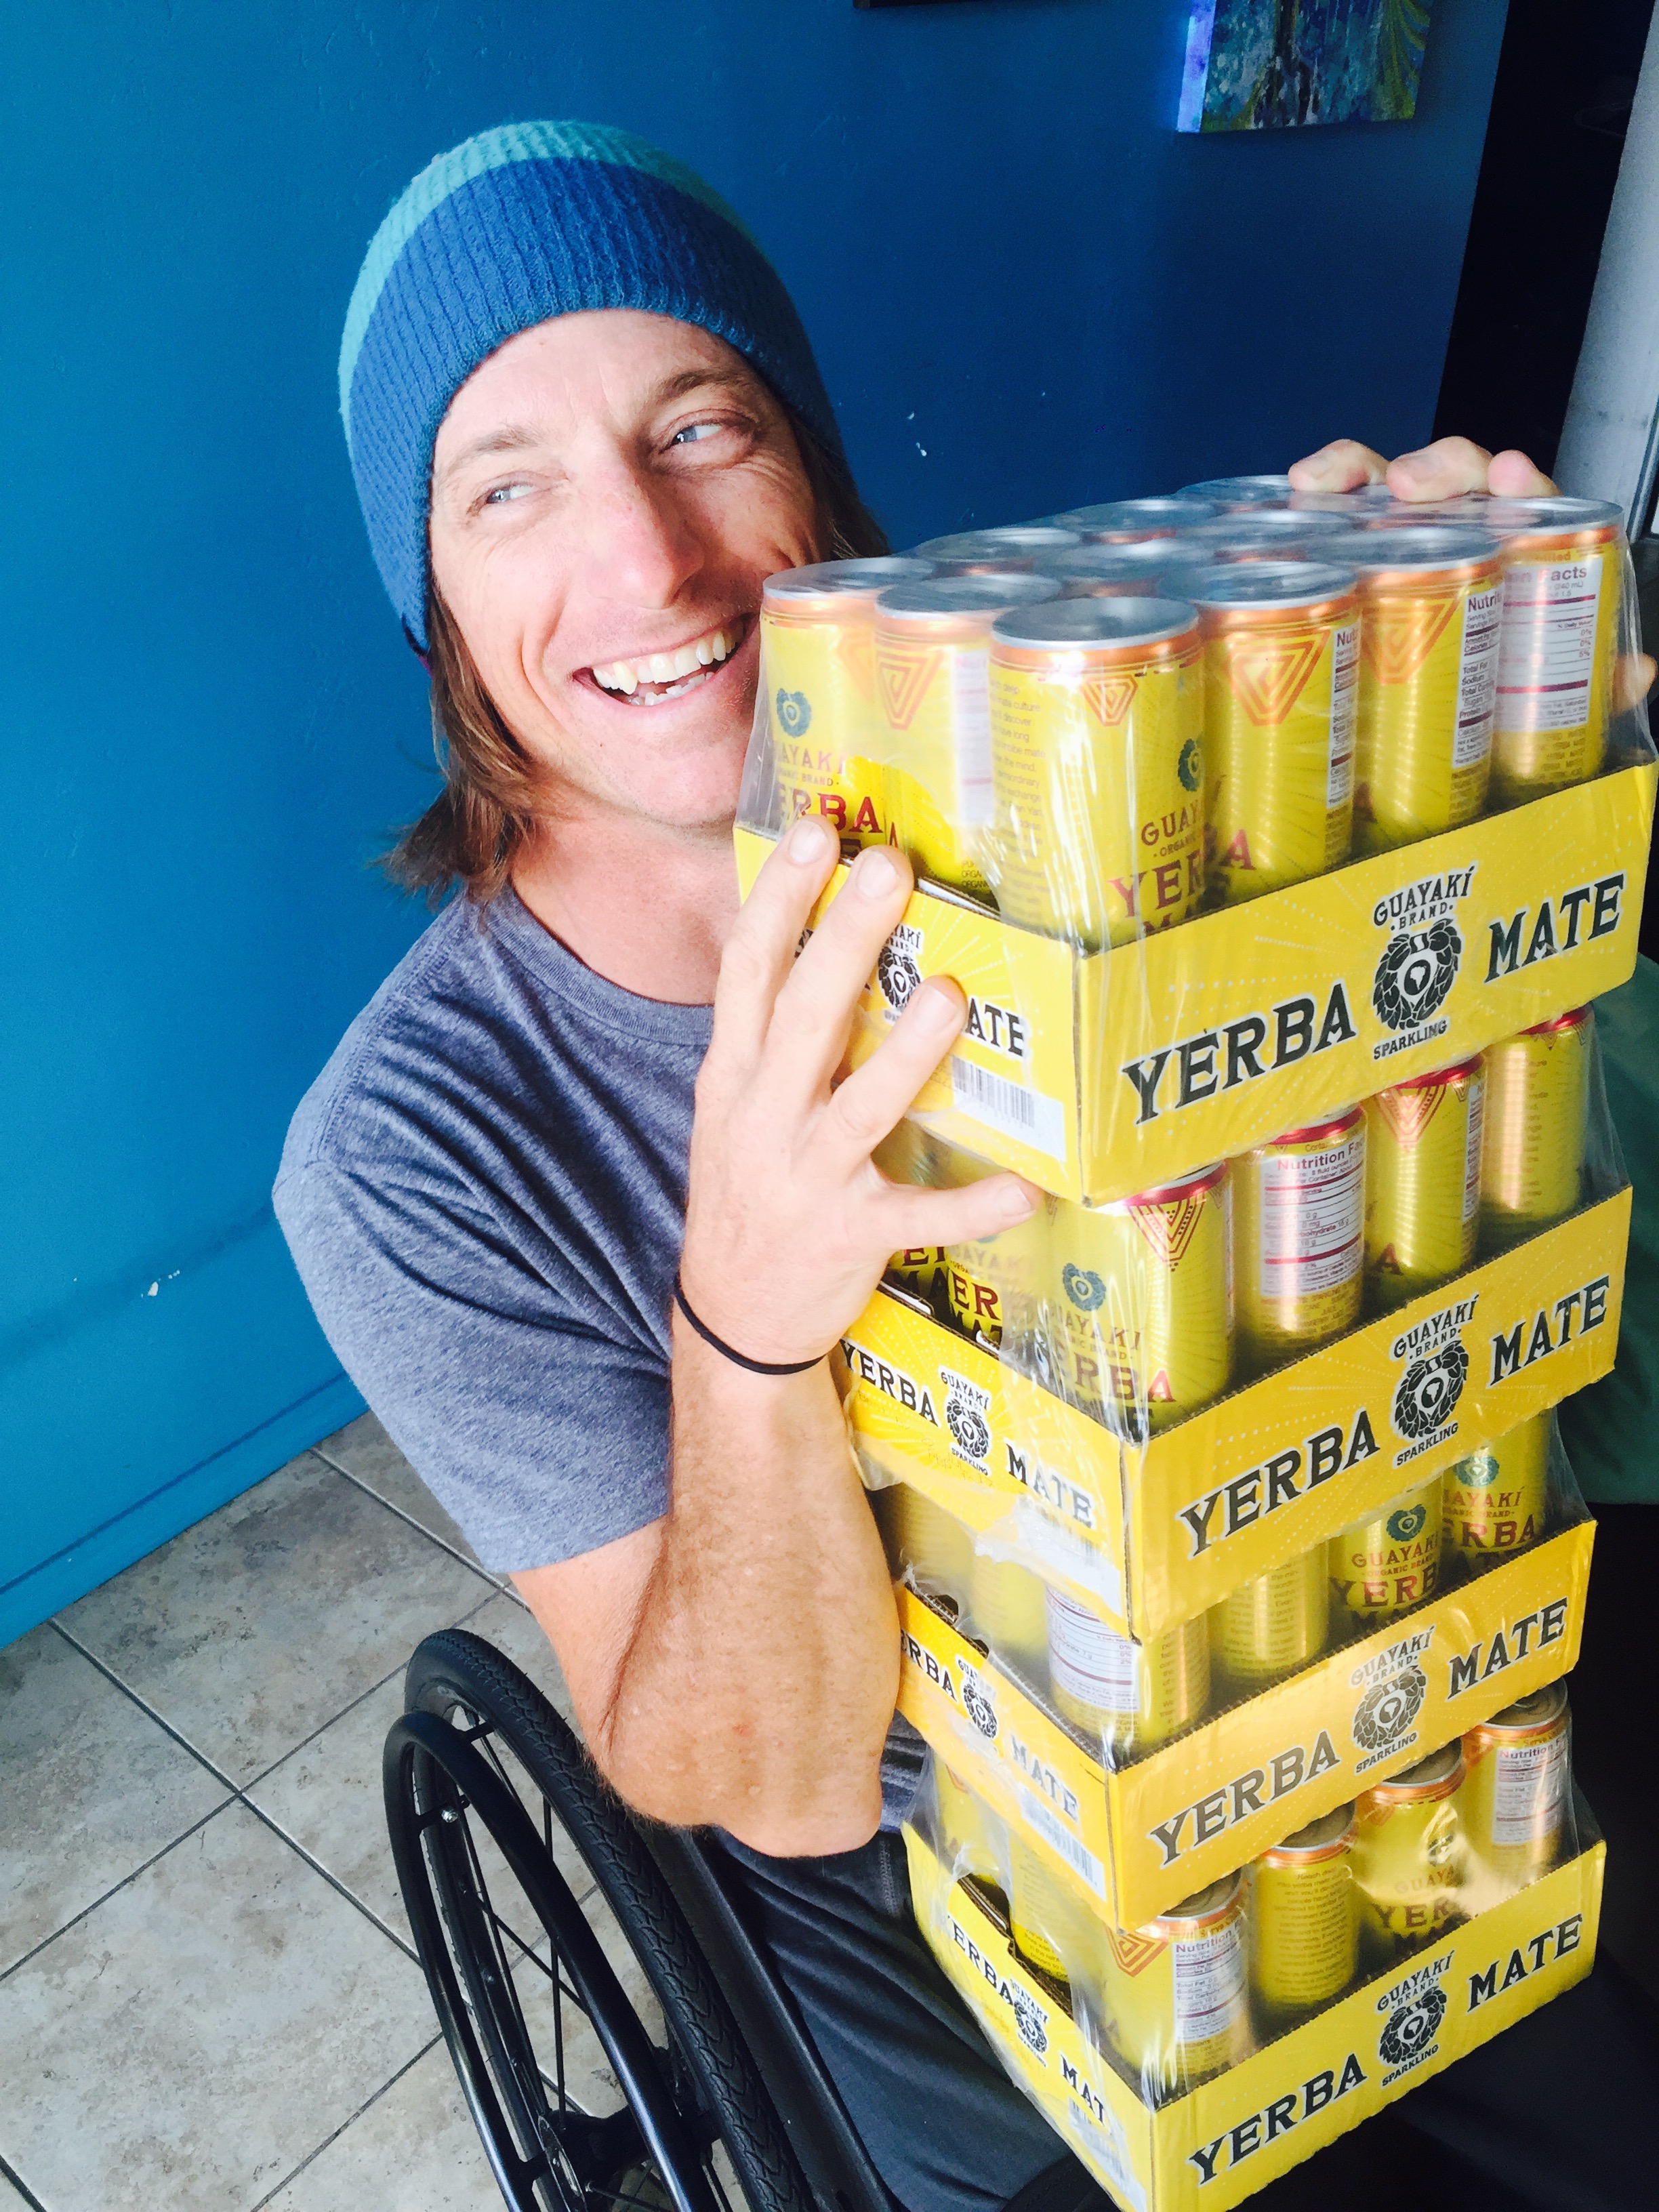 Addicted to Guayaki. Photo by Meghan Foley